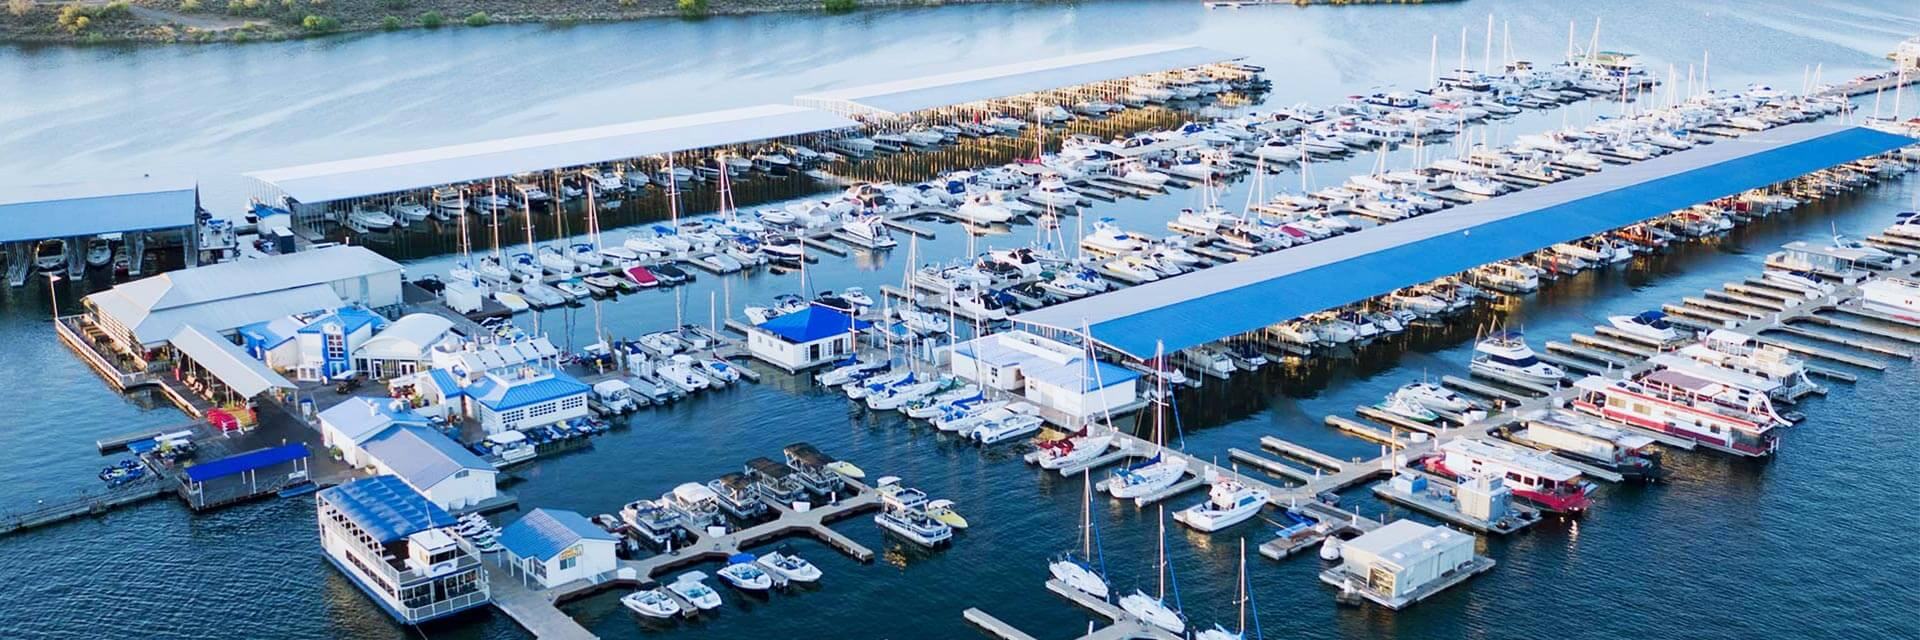 An arial view of Pleasant Harbor Marina